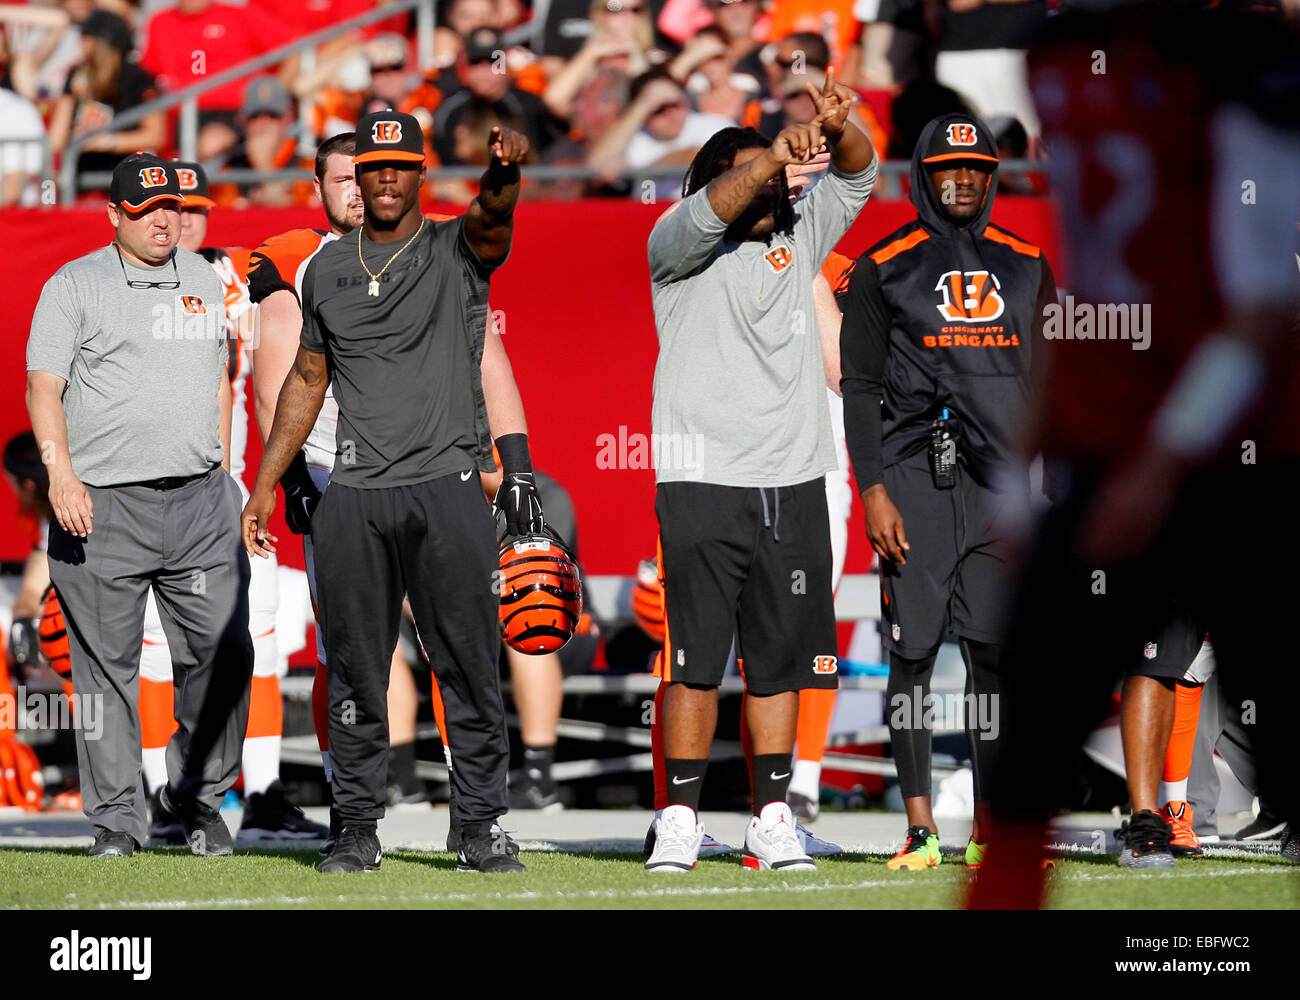 Tampa, Florida, USA. 30th November, 2014. The Cincinnati Bengals sidelines erupts as they try to signal that there Stock Photo